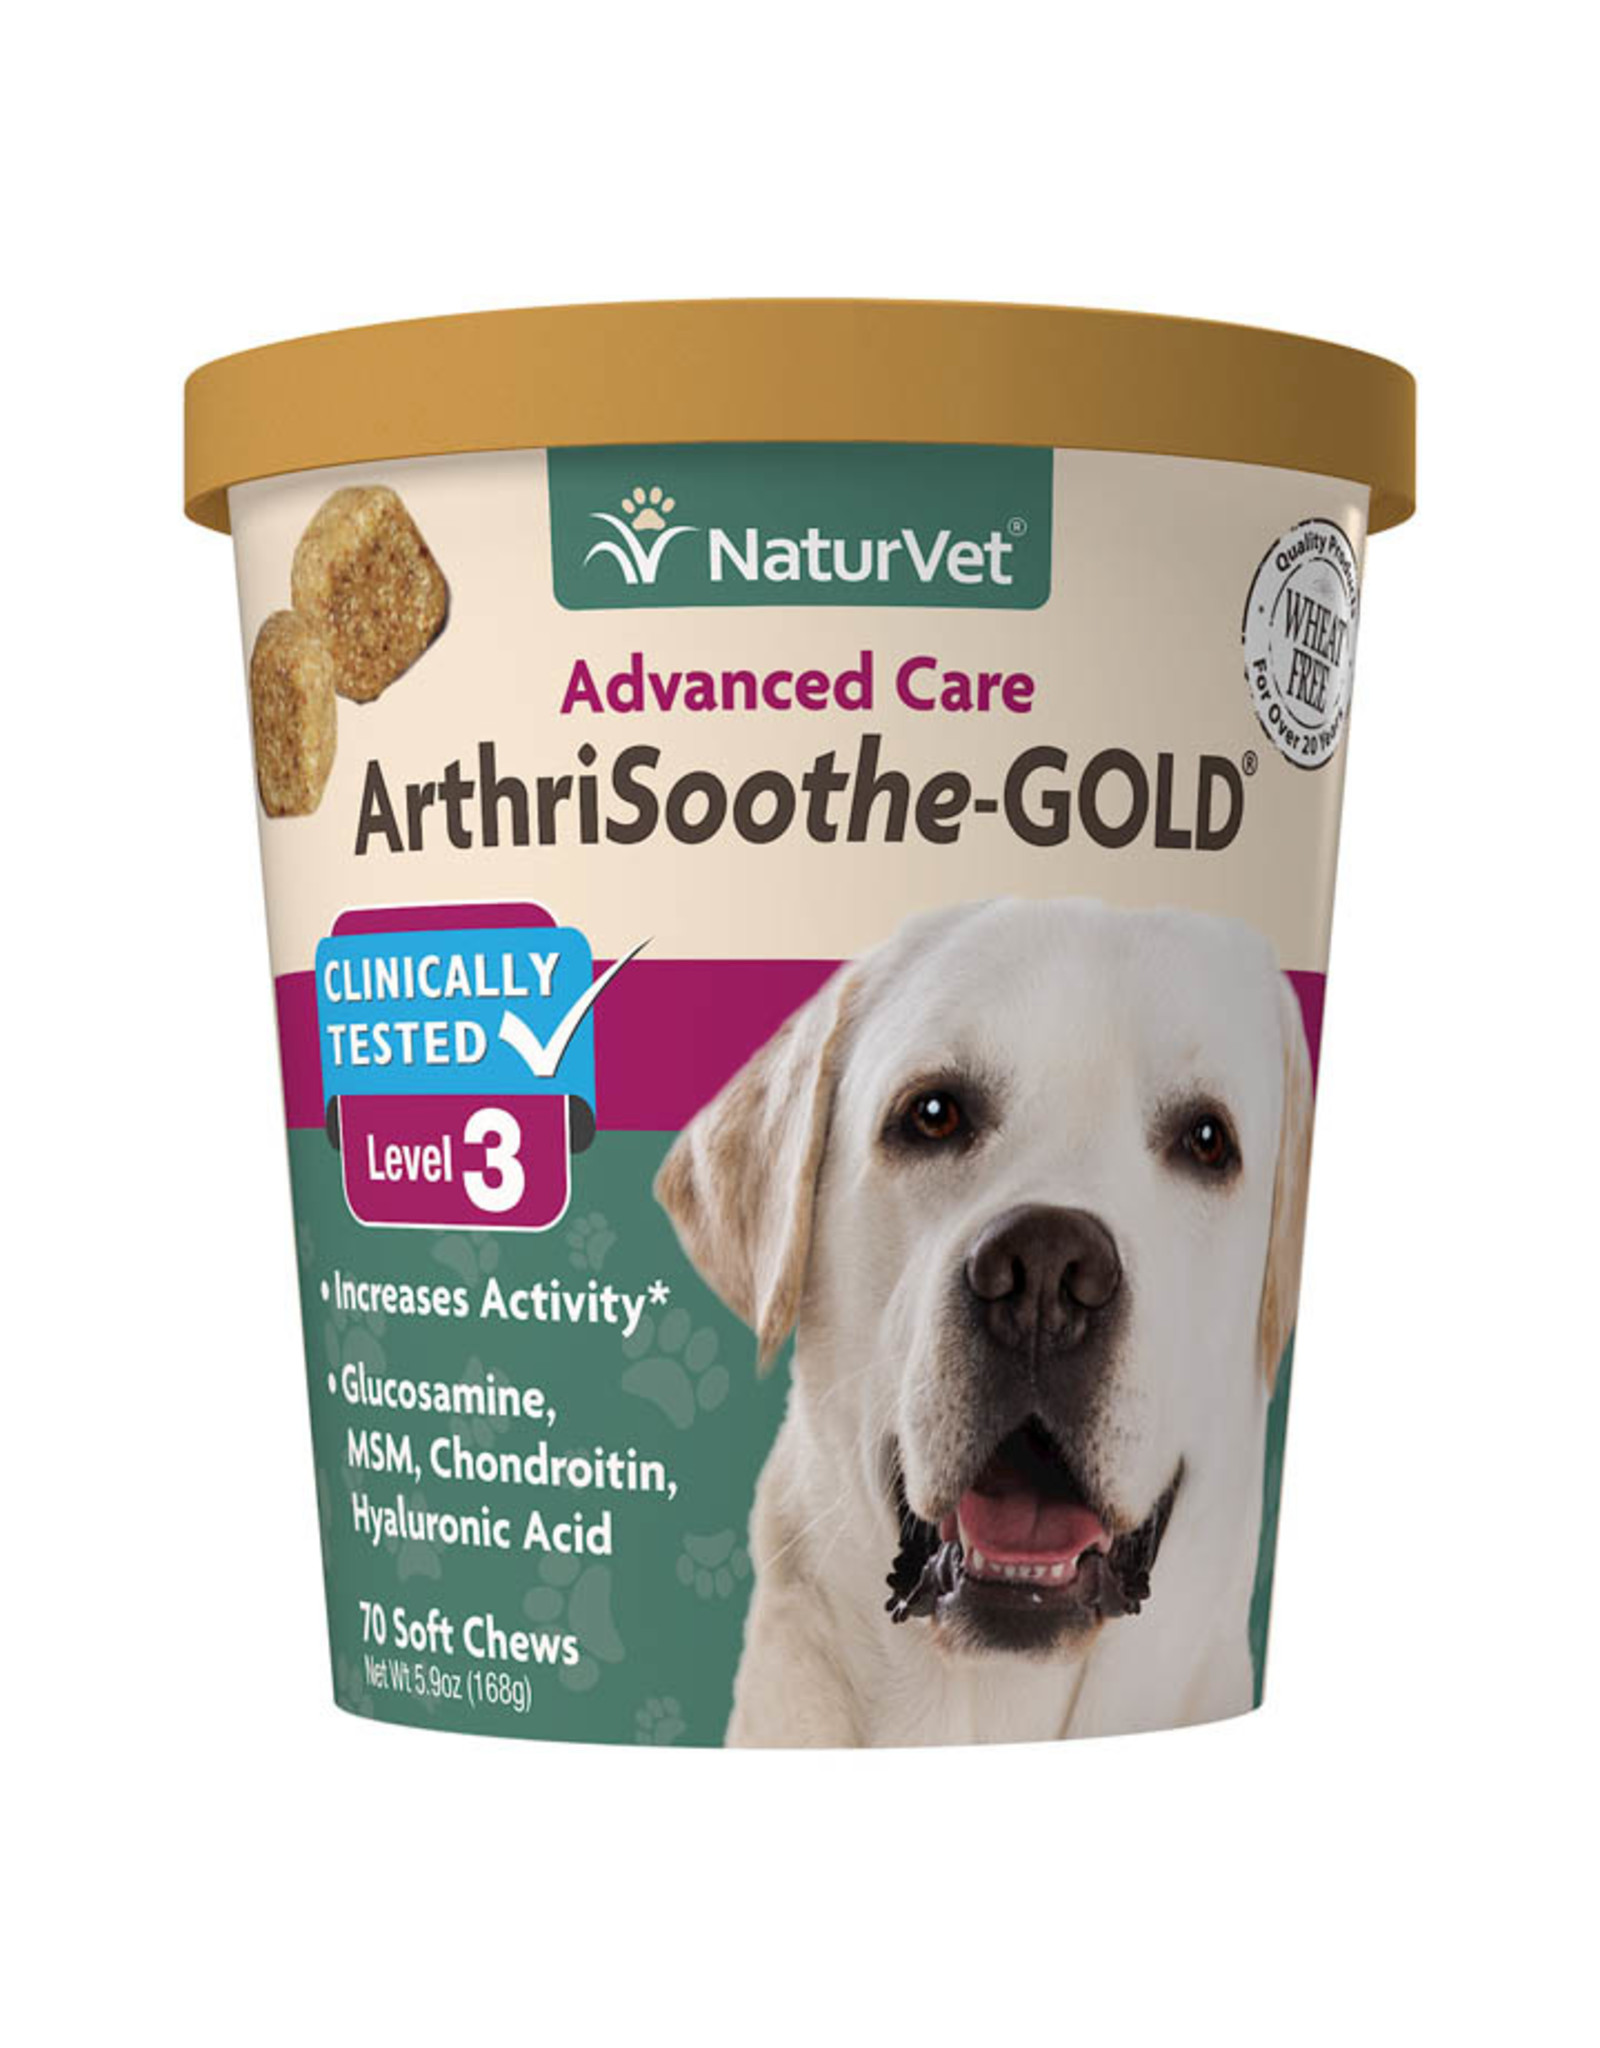 naturVet NaturVet ArthriSoothe Gold Advanced Care Level 3 Joint Health Soft Chews for Dogs and Cats - 70ct, 180ct